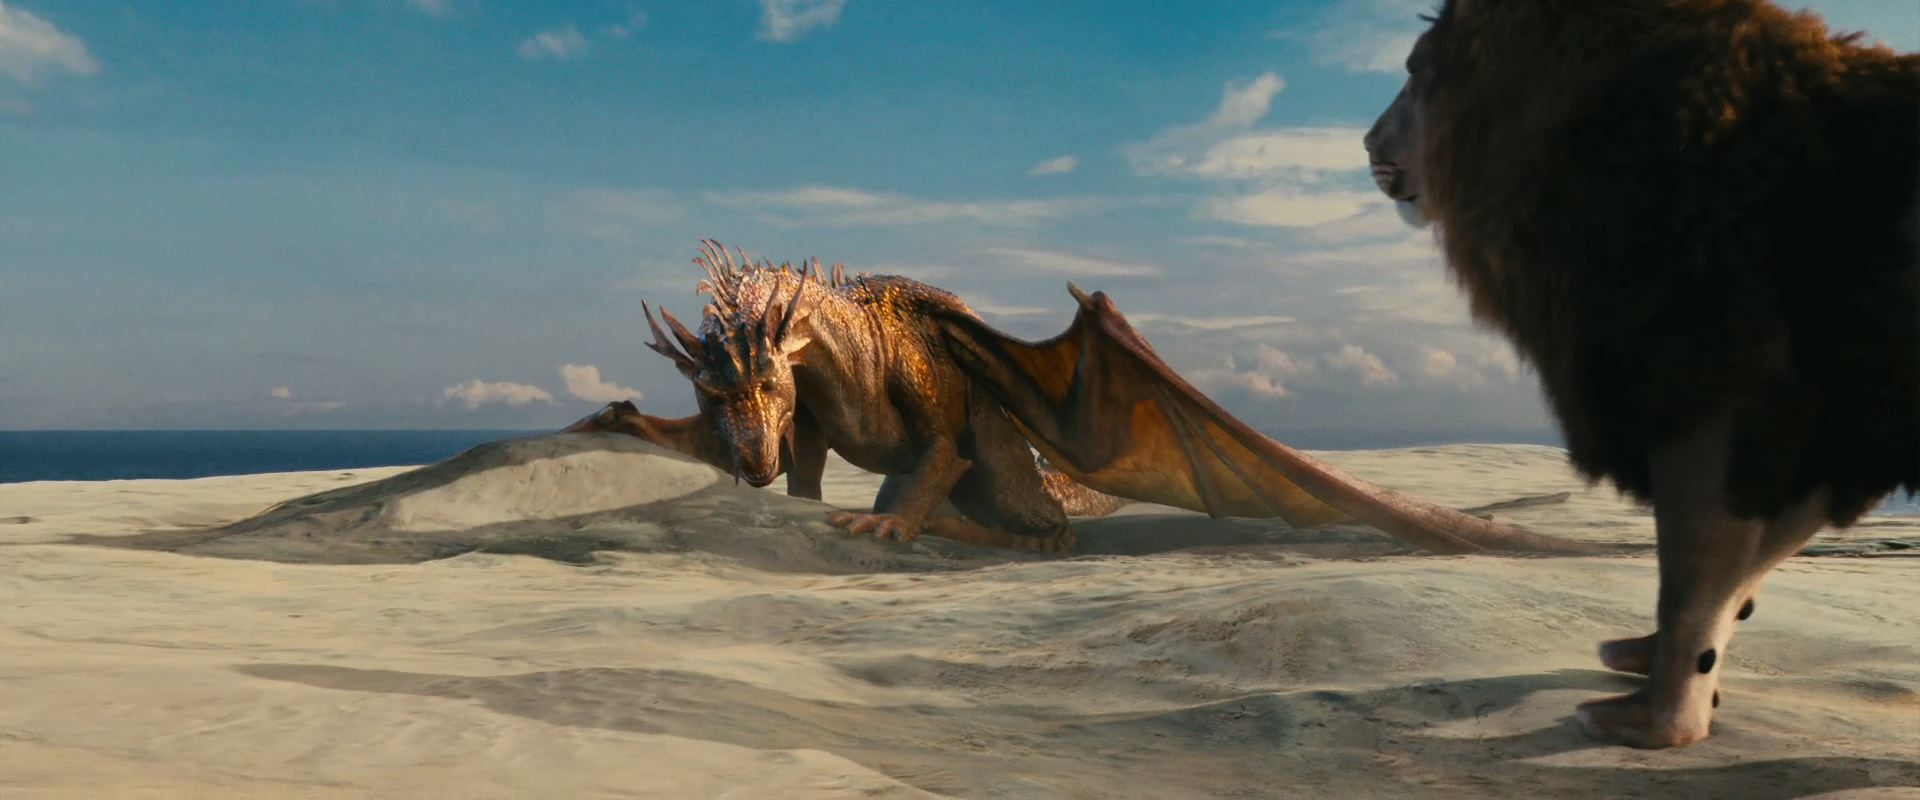 Aslan and the Dragon from Chronicles of Narnia Voyage of the Dawn 1920x800